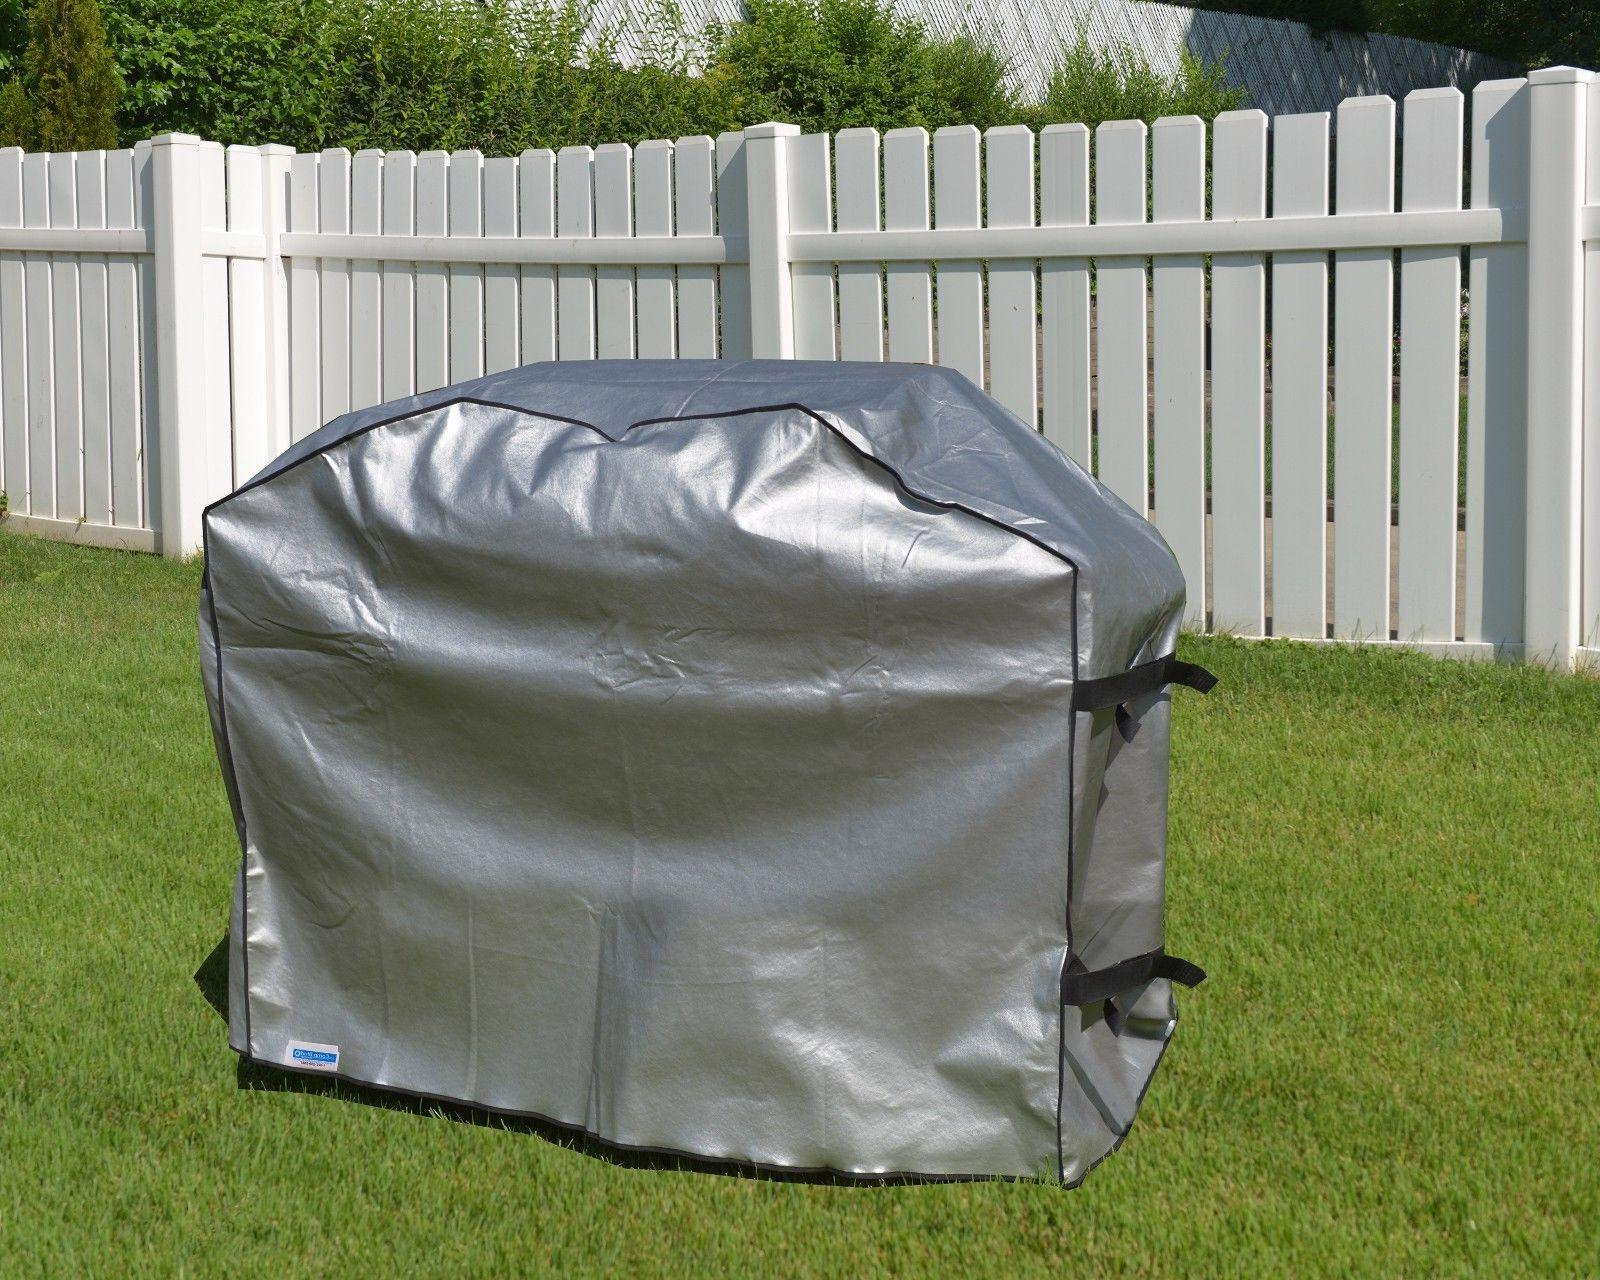 Comp Bind Technology Grill Cover for Weber Spirit E-310 Gril